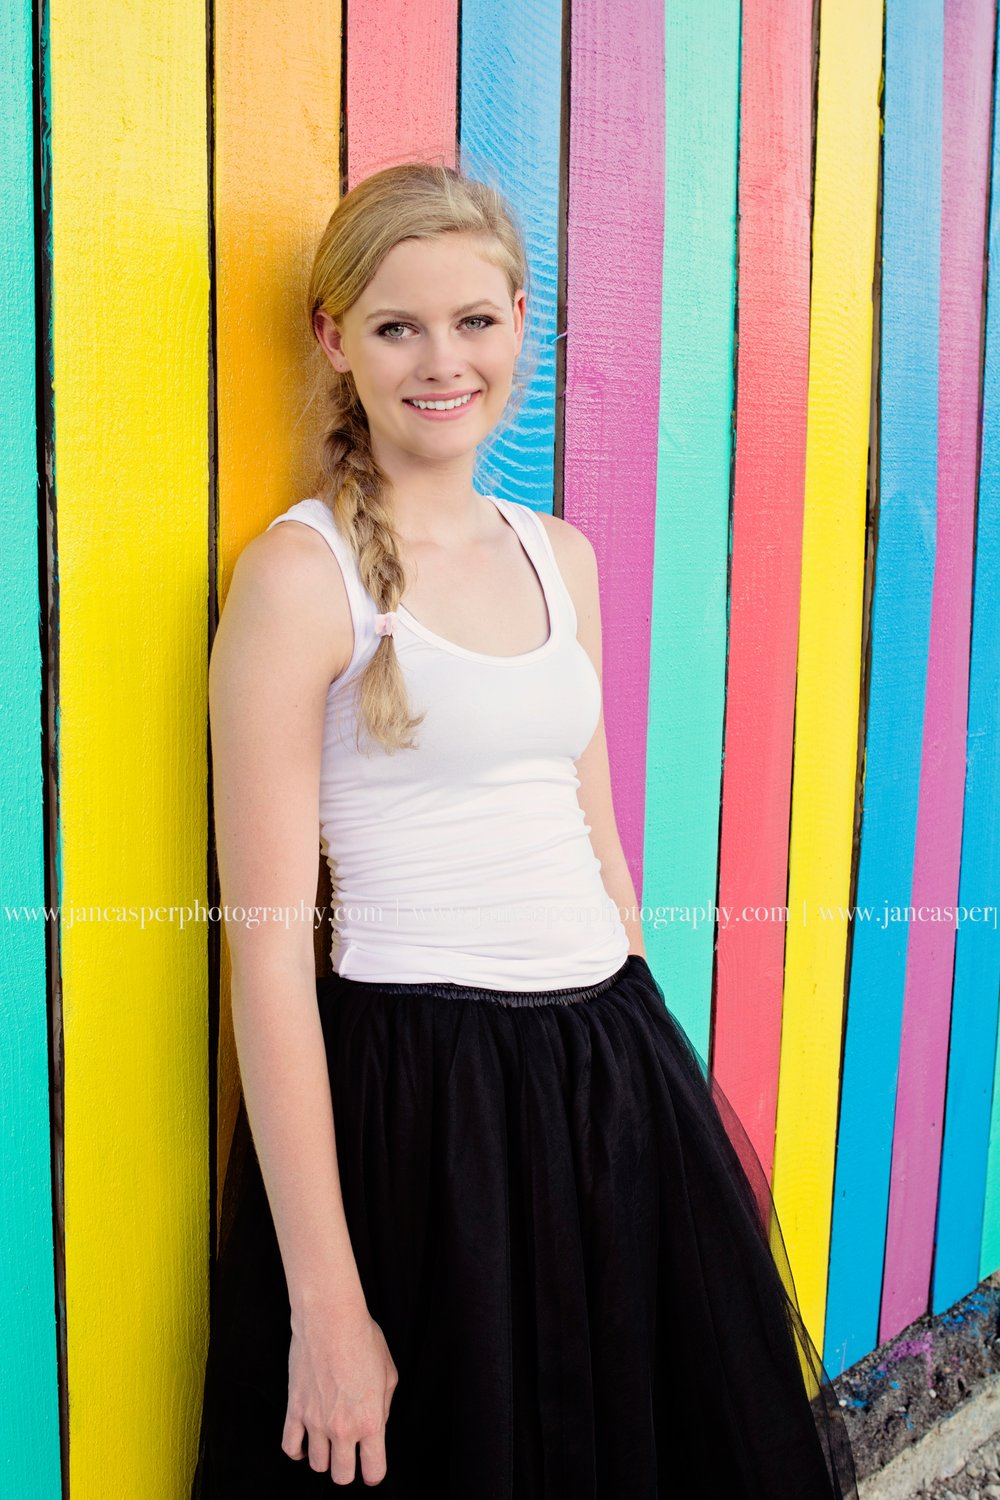 Norfolk Neon District senior portrait Jan Casper Photography